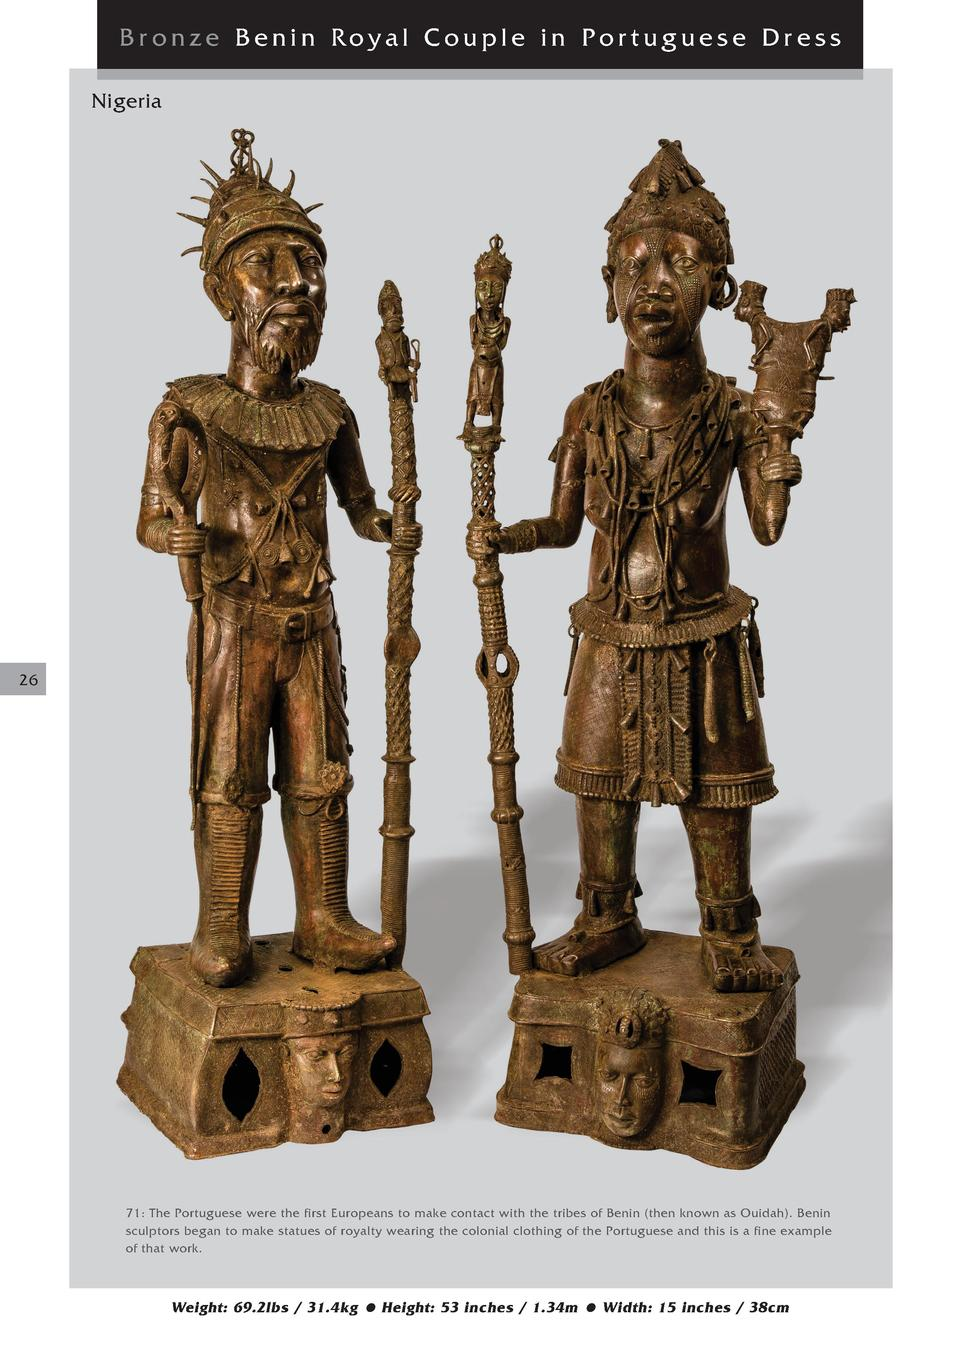 Bronze Benin Royal Couple in Portuguese Dress Nigeria  26  71  The Portuguese were the first Europeans to make contact wit...